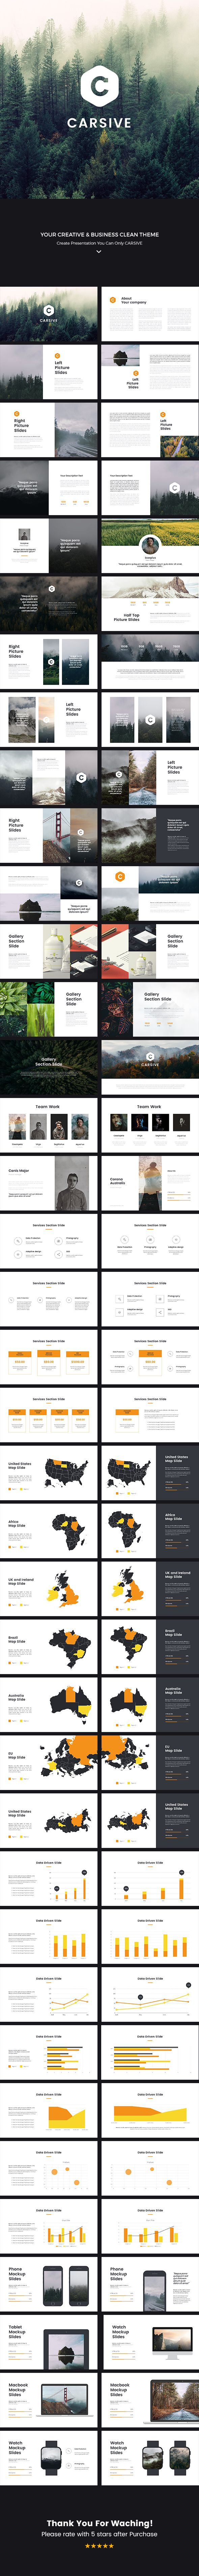 Carsive Clean Keynote Template - Creative Keynote Templates